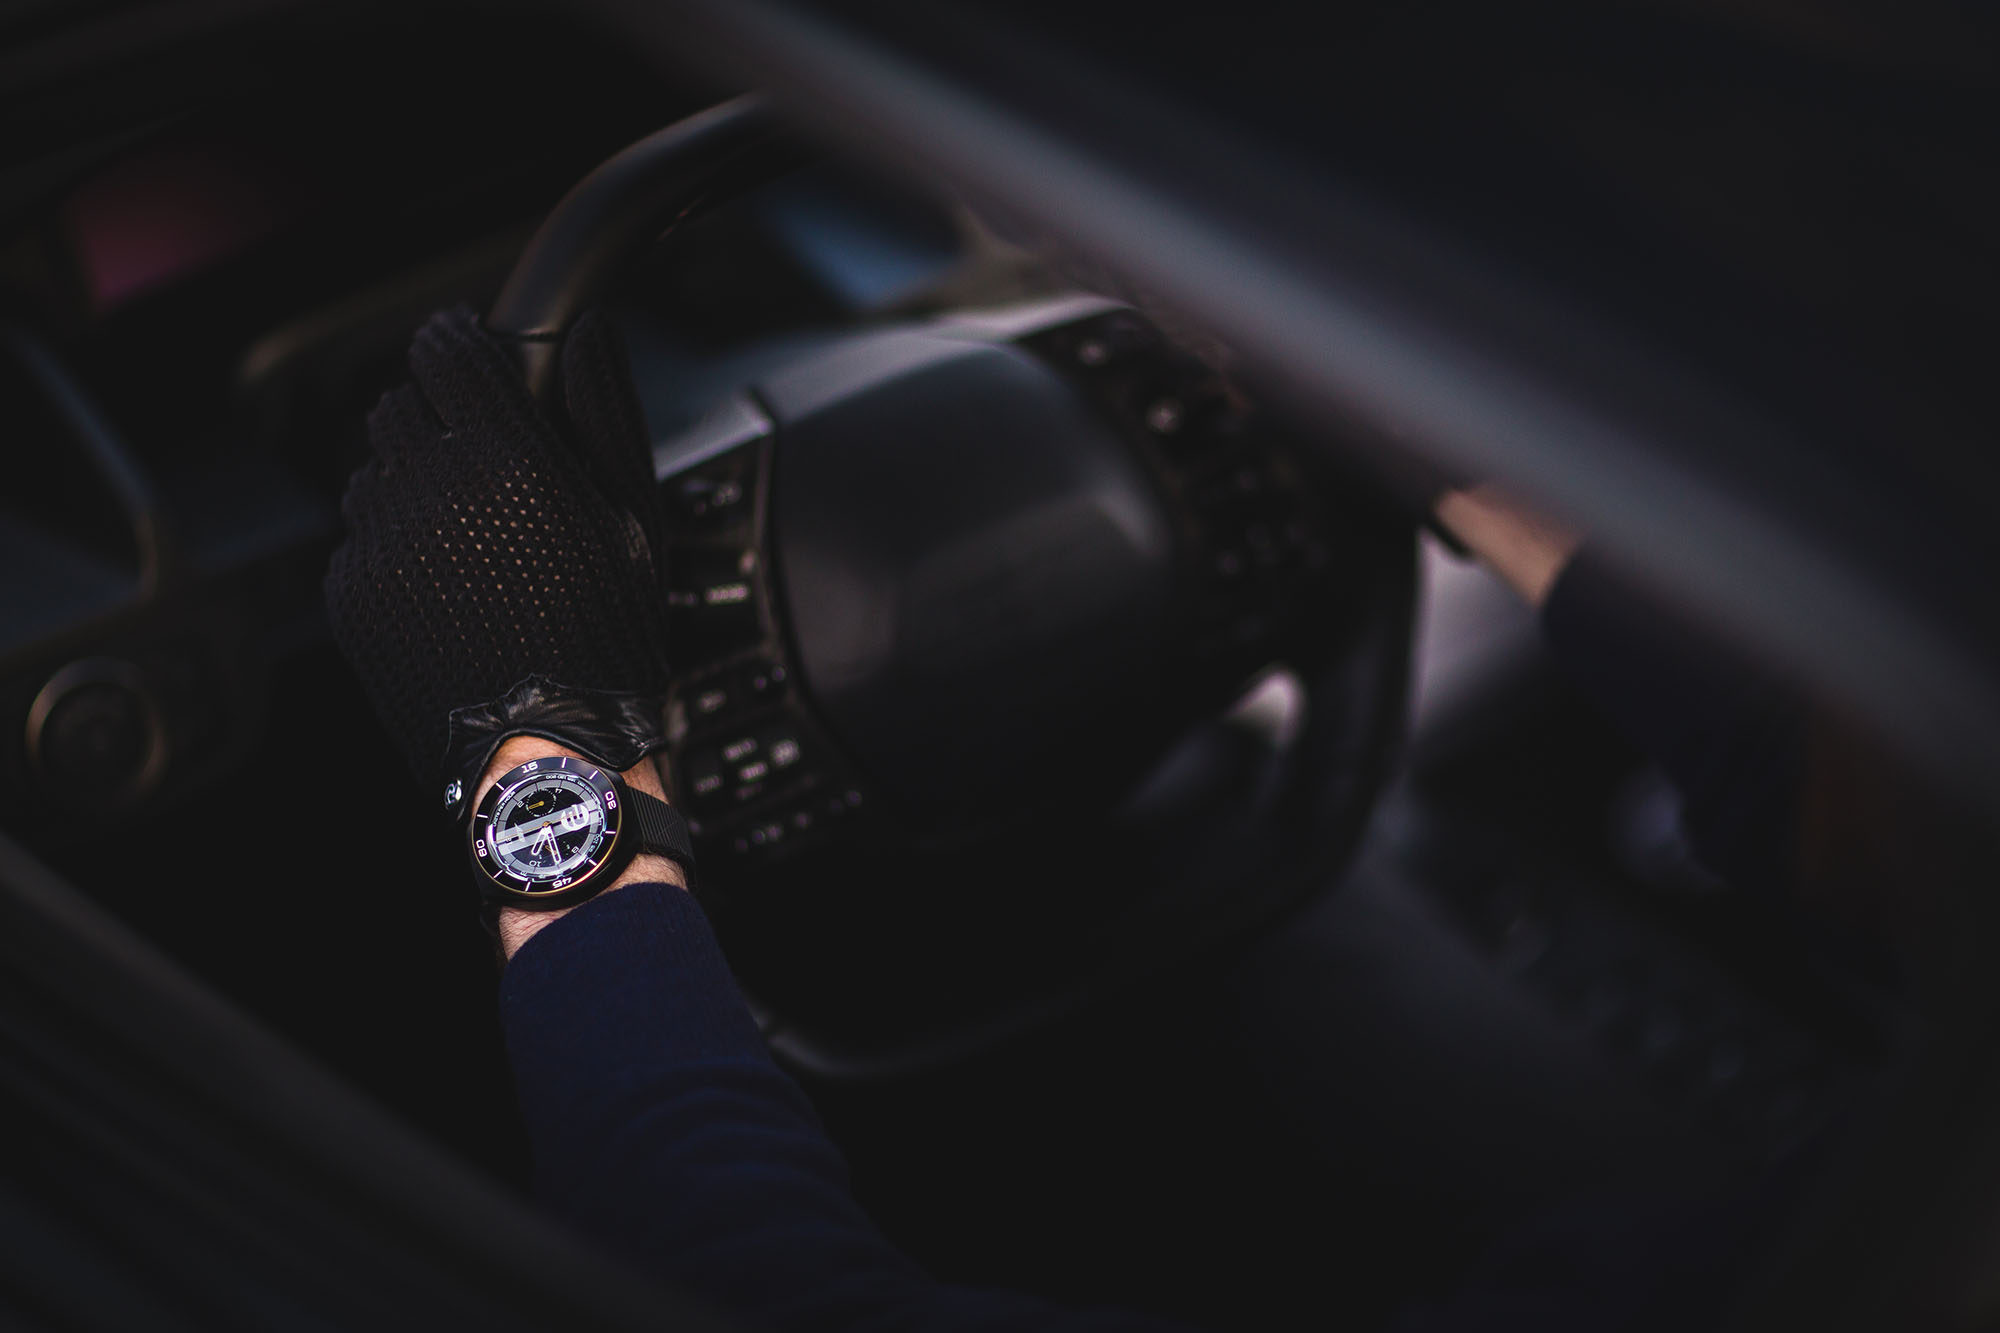 The Autodromo Ford Gt Owners Editi On Chronograph